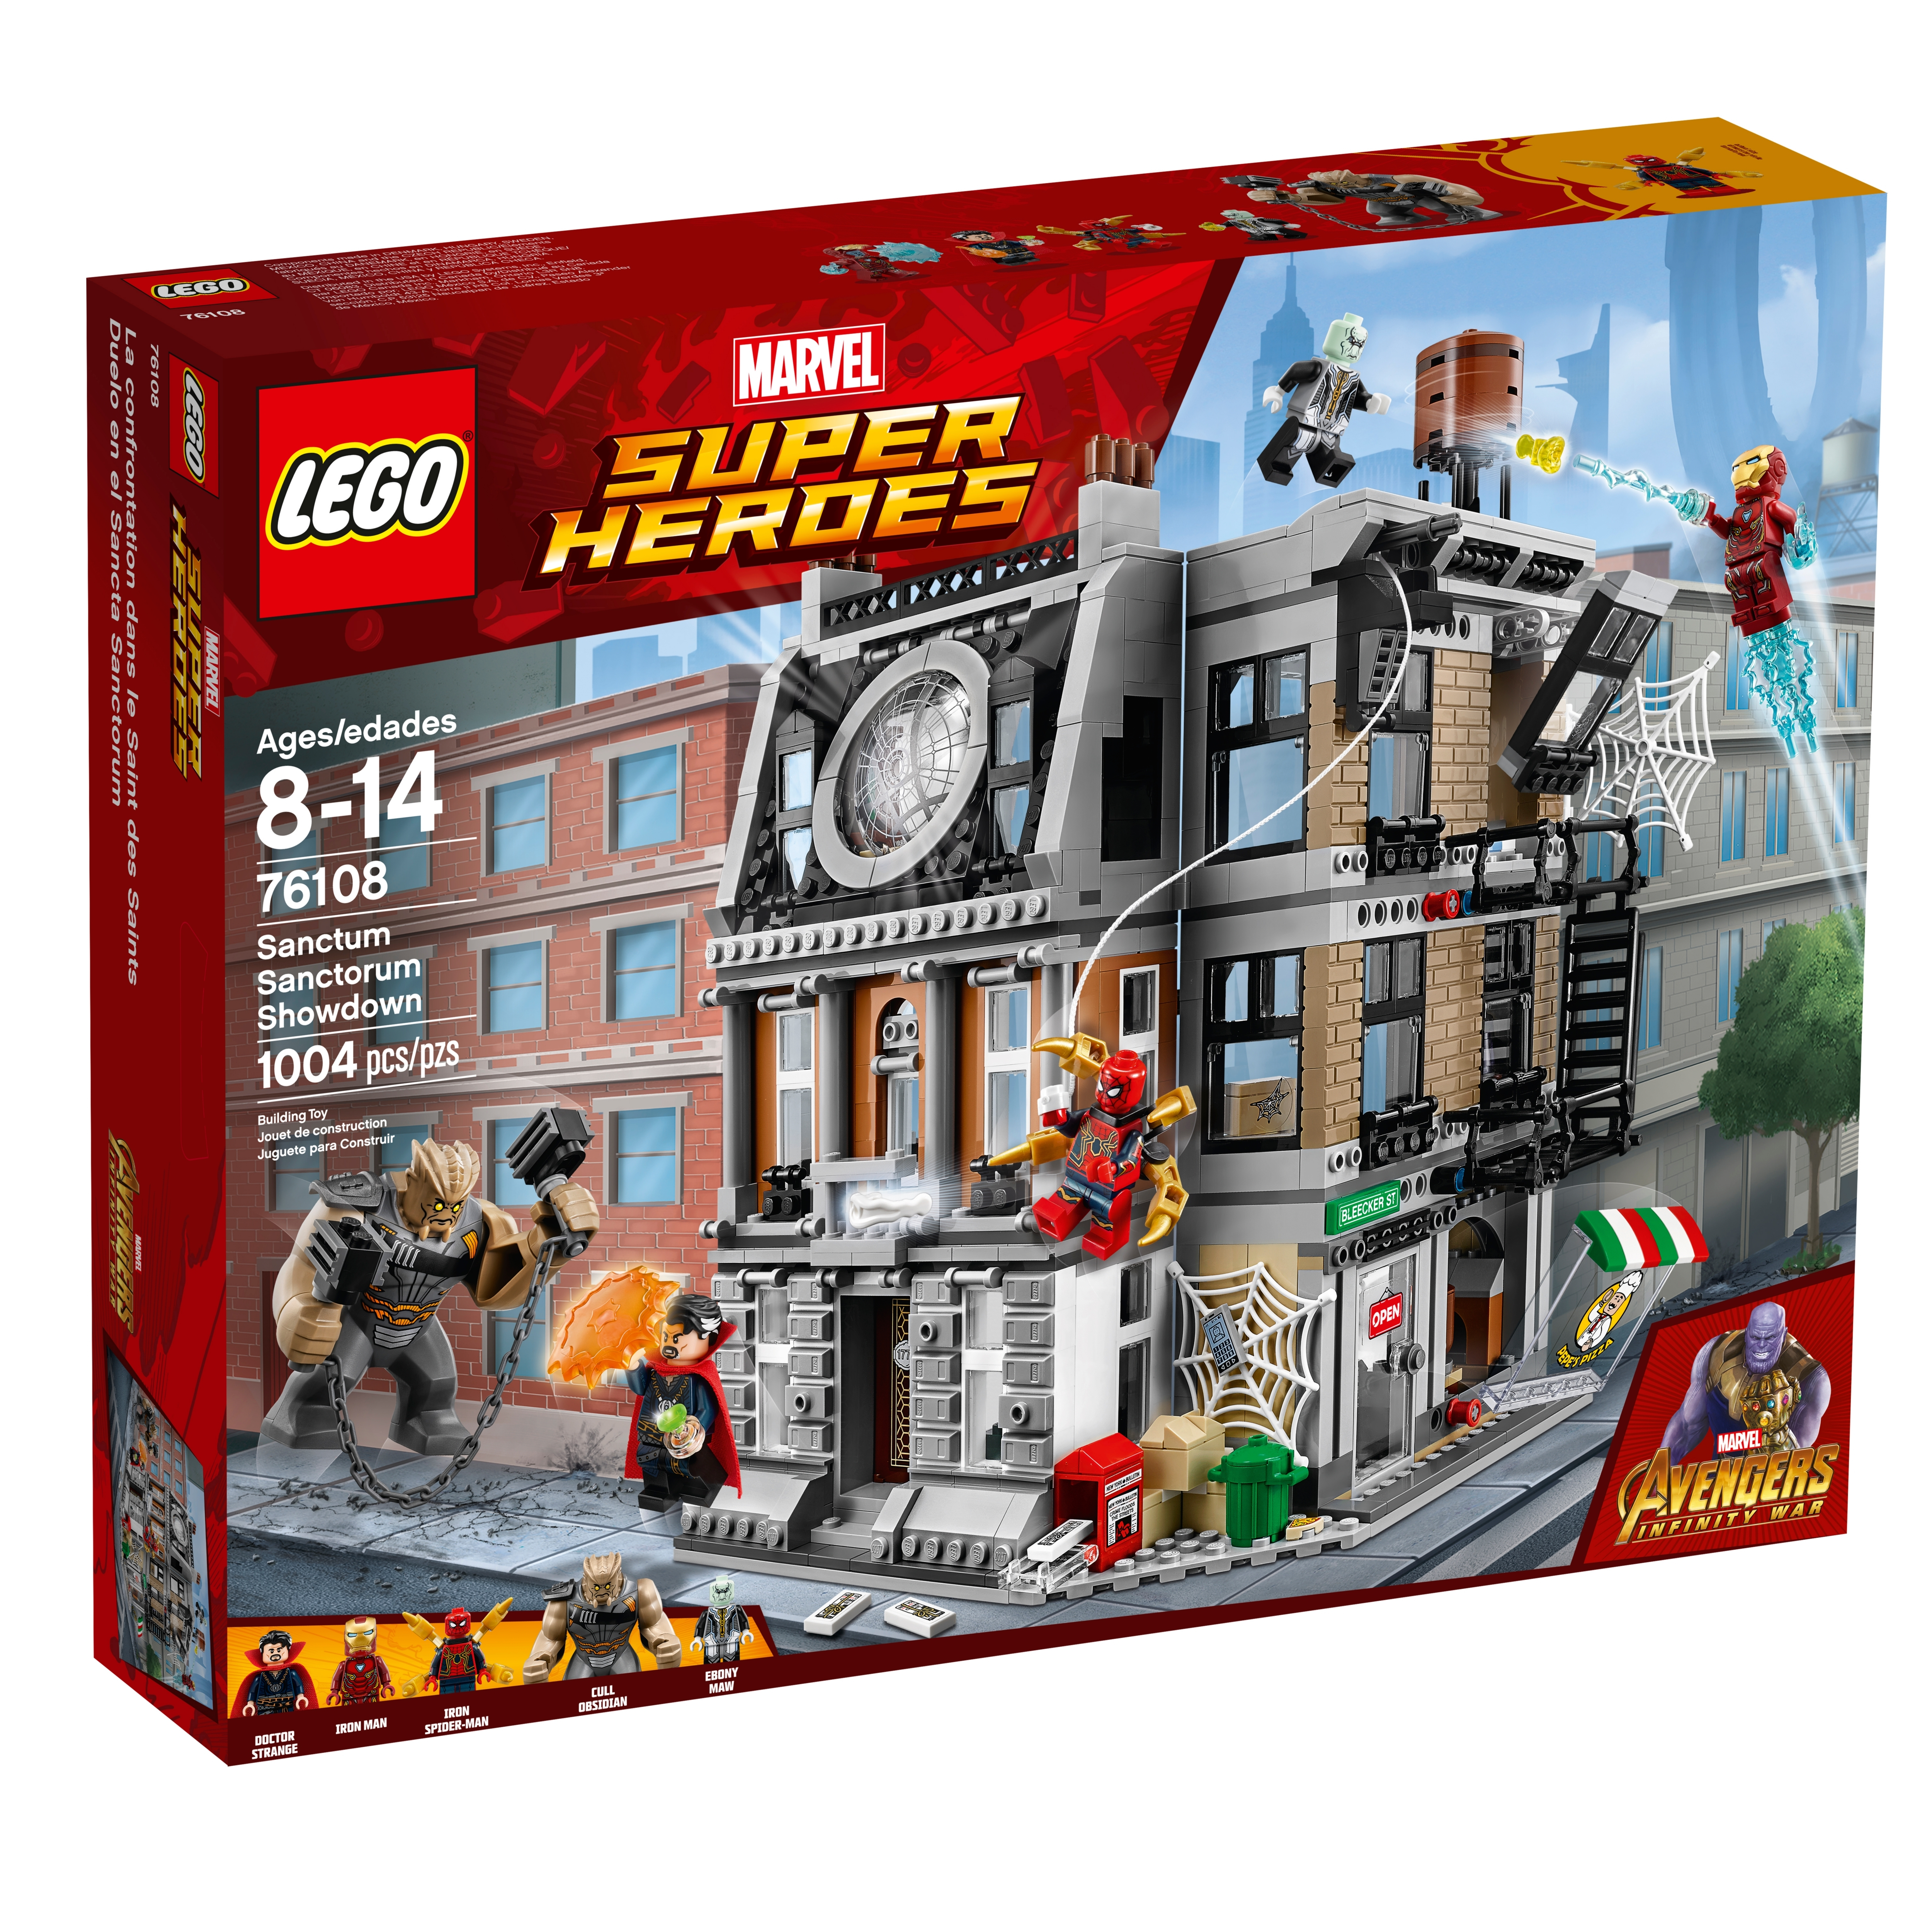 Lego movie video games 100 completely free black dating site 10